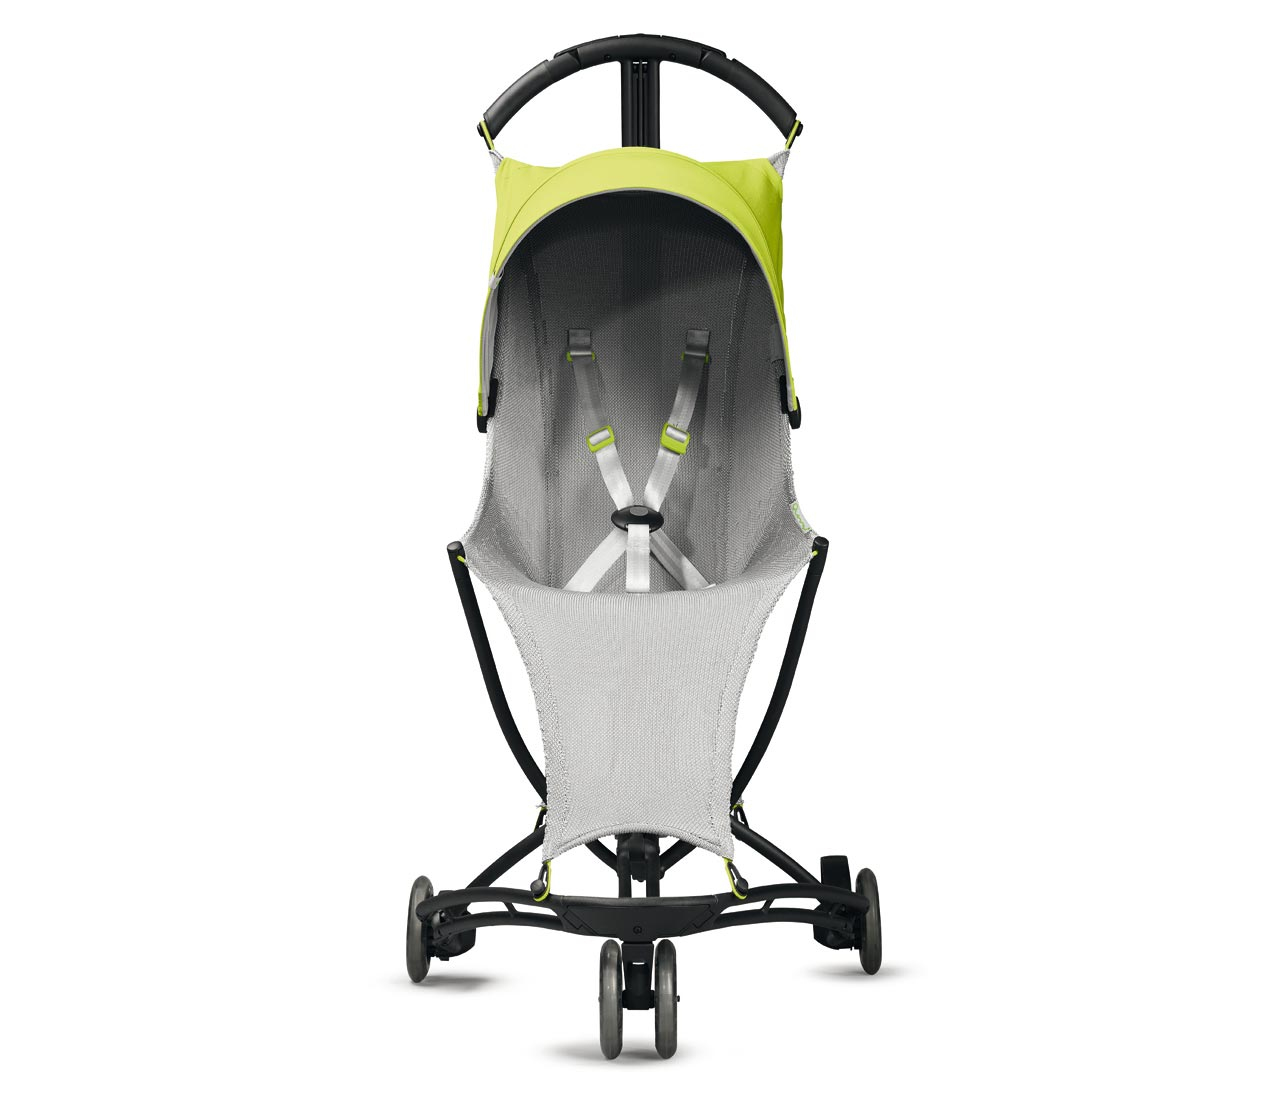 Foldable baby stroller with 3D-knit